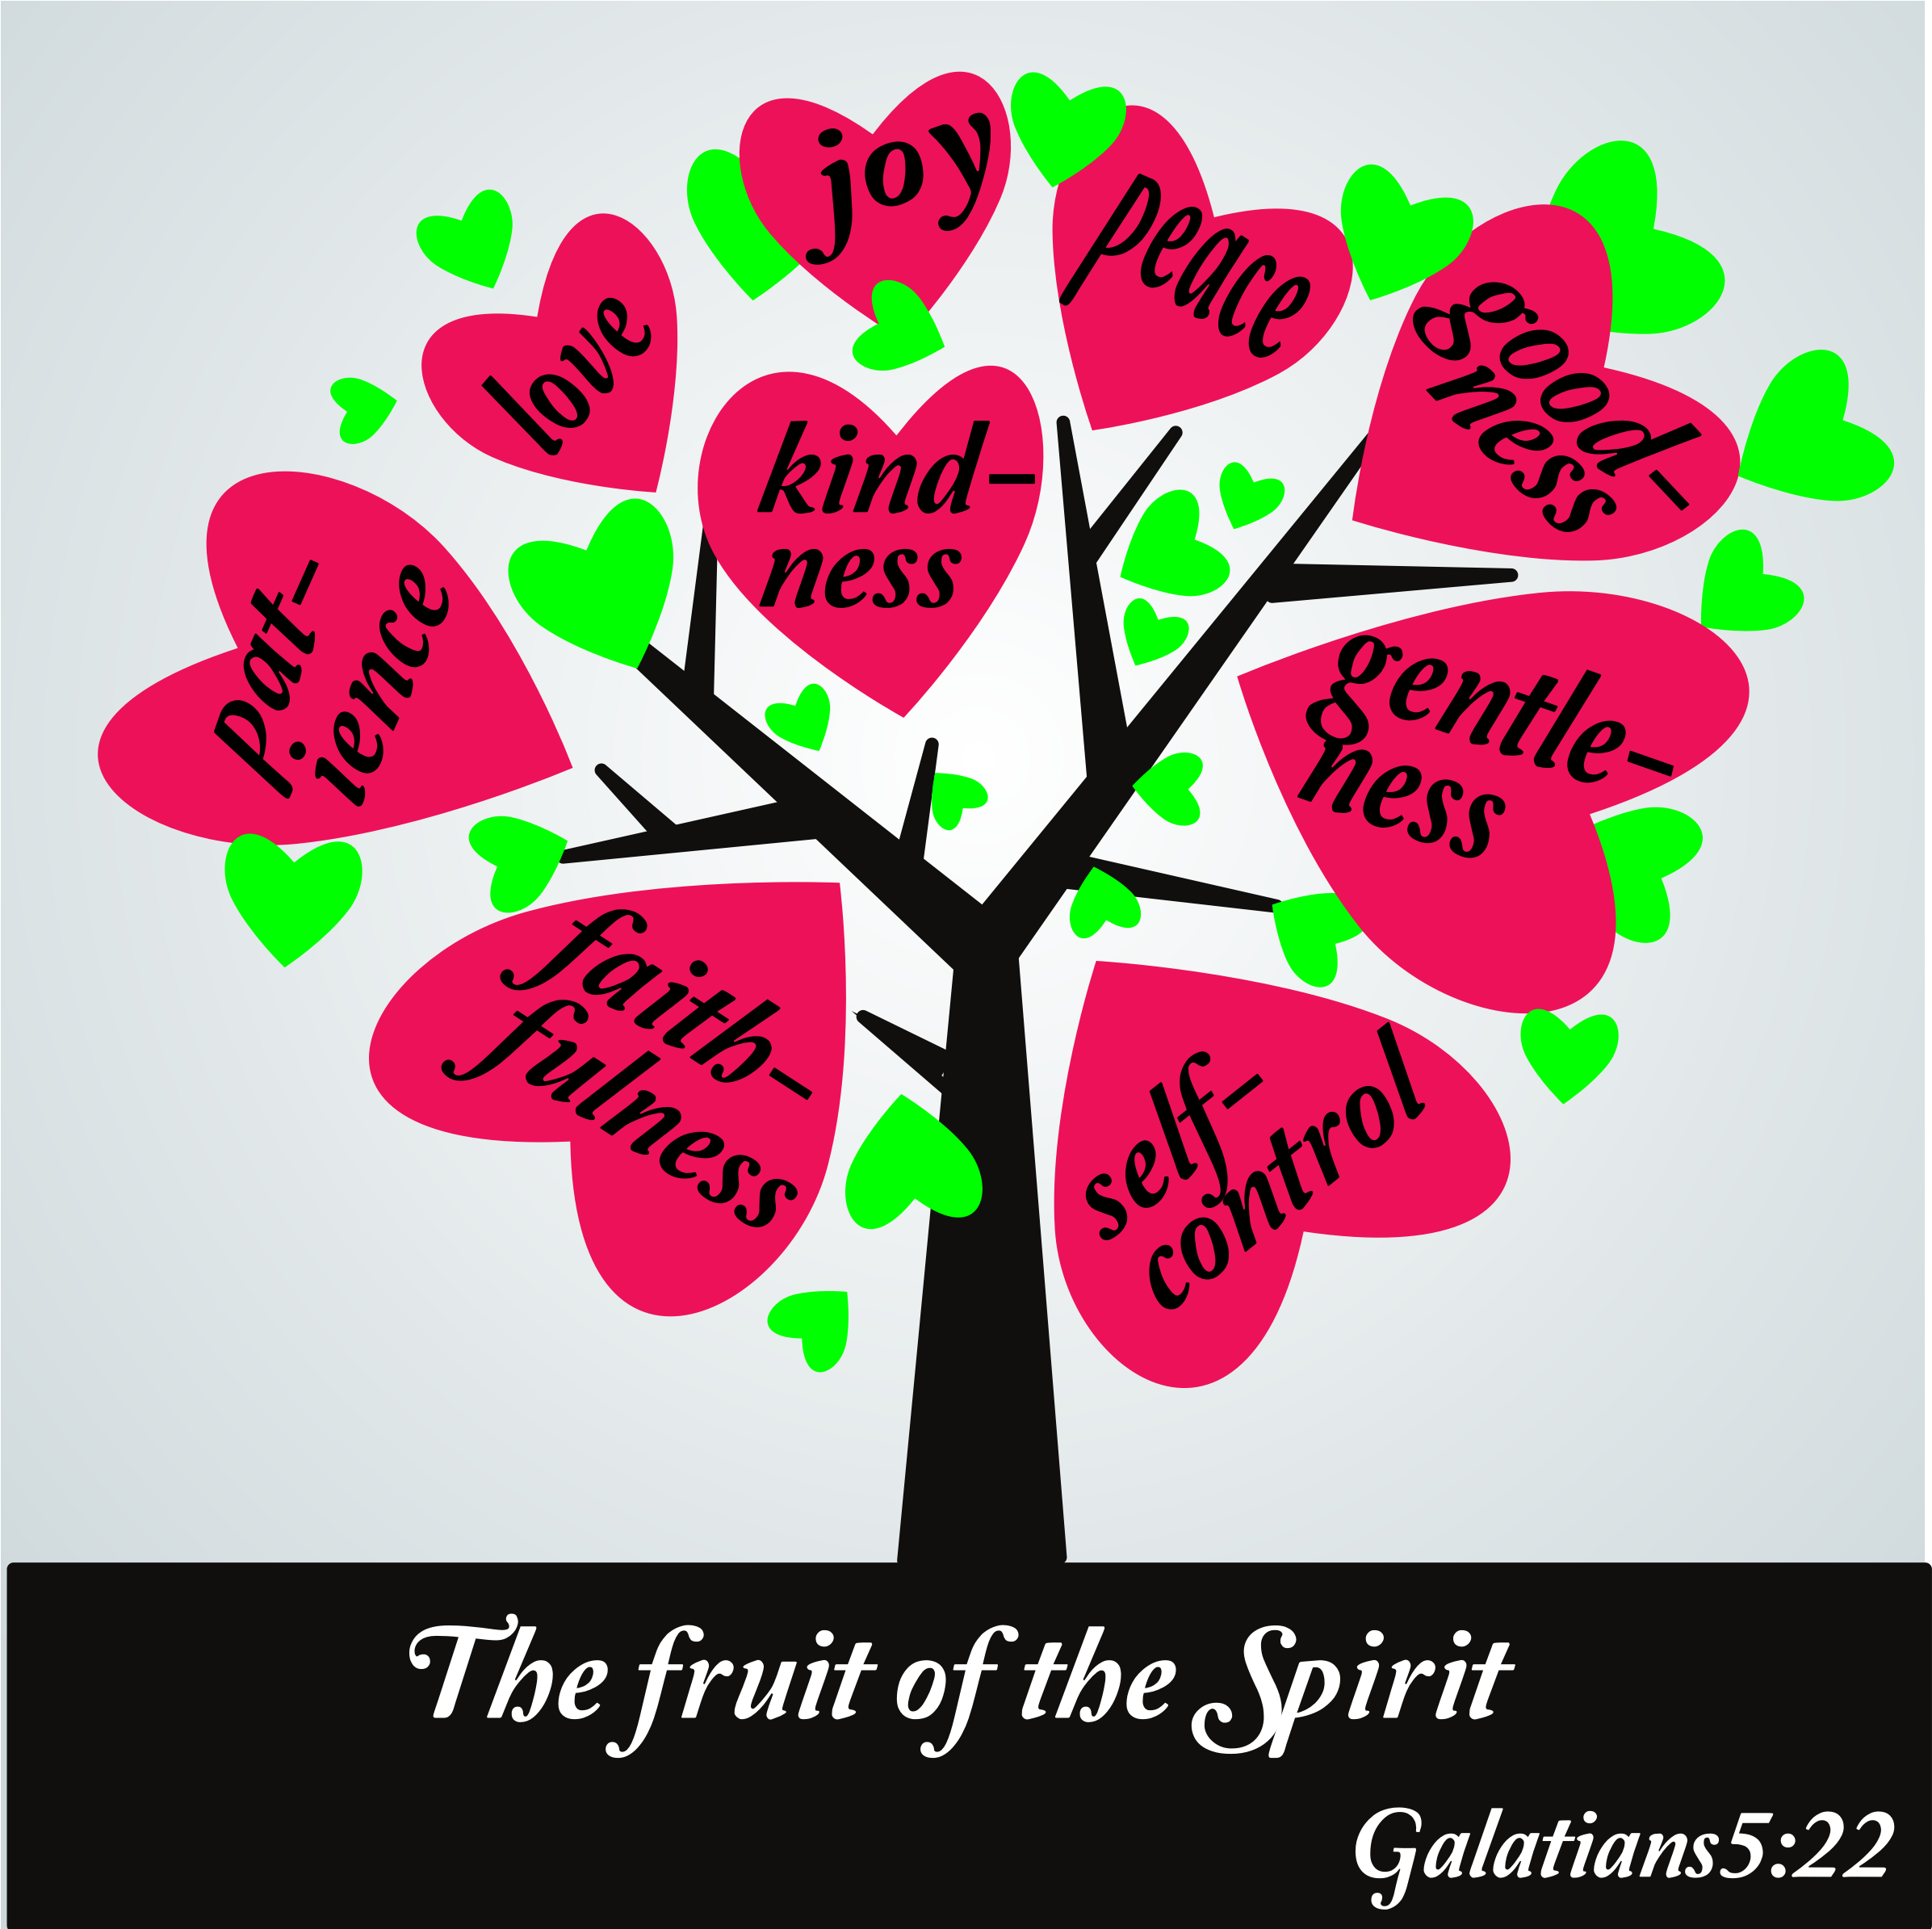 clipart the fruit of the spirit galatians 5 25 rh openclipart org fruit of the holy spirit clipart fruit of the holy spirit clipart